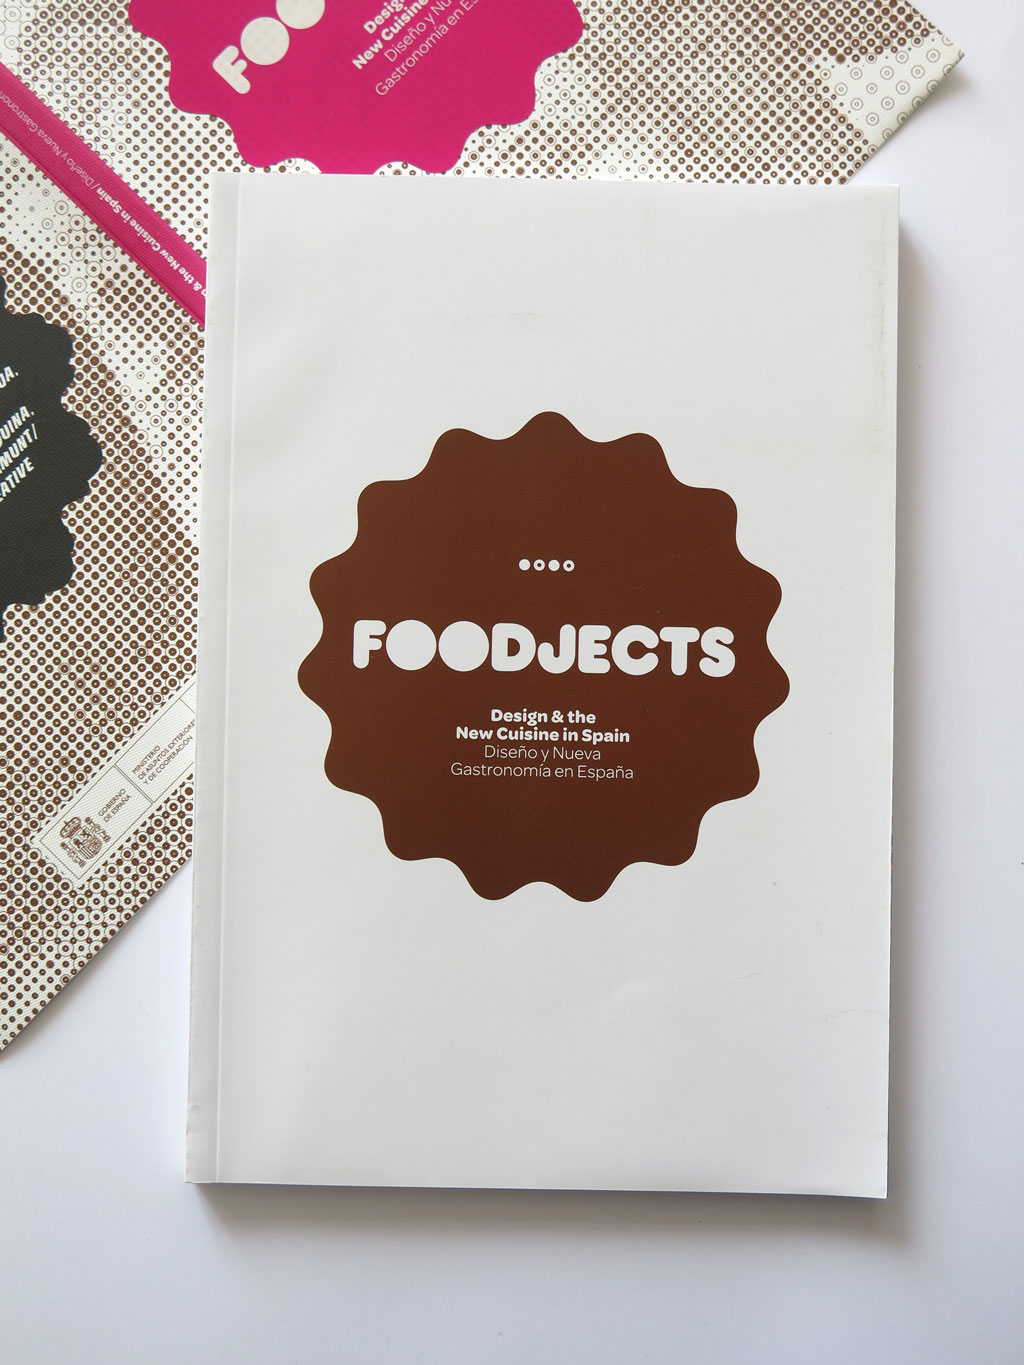 press-martin-azua-foodjects-02